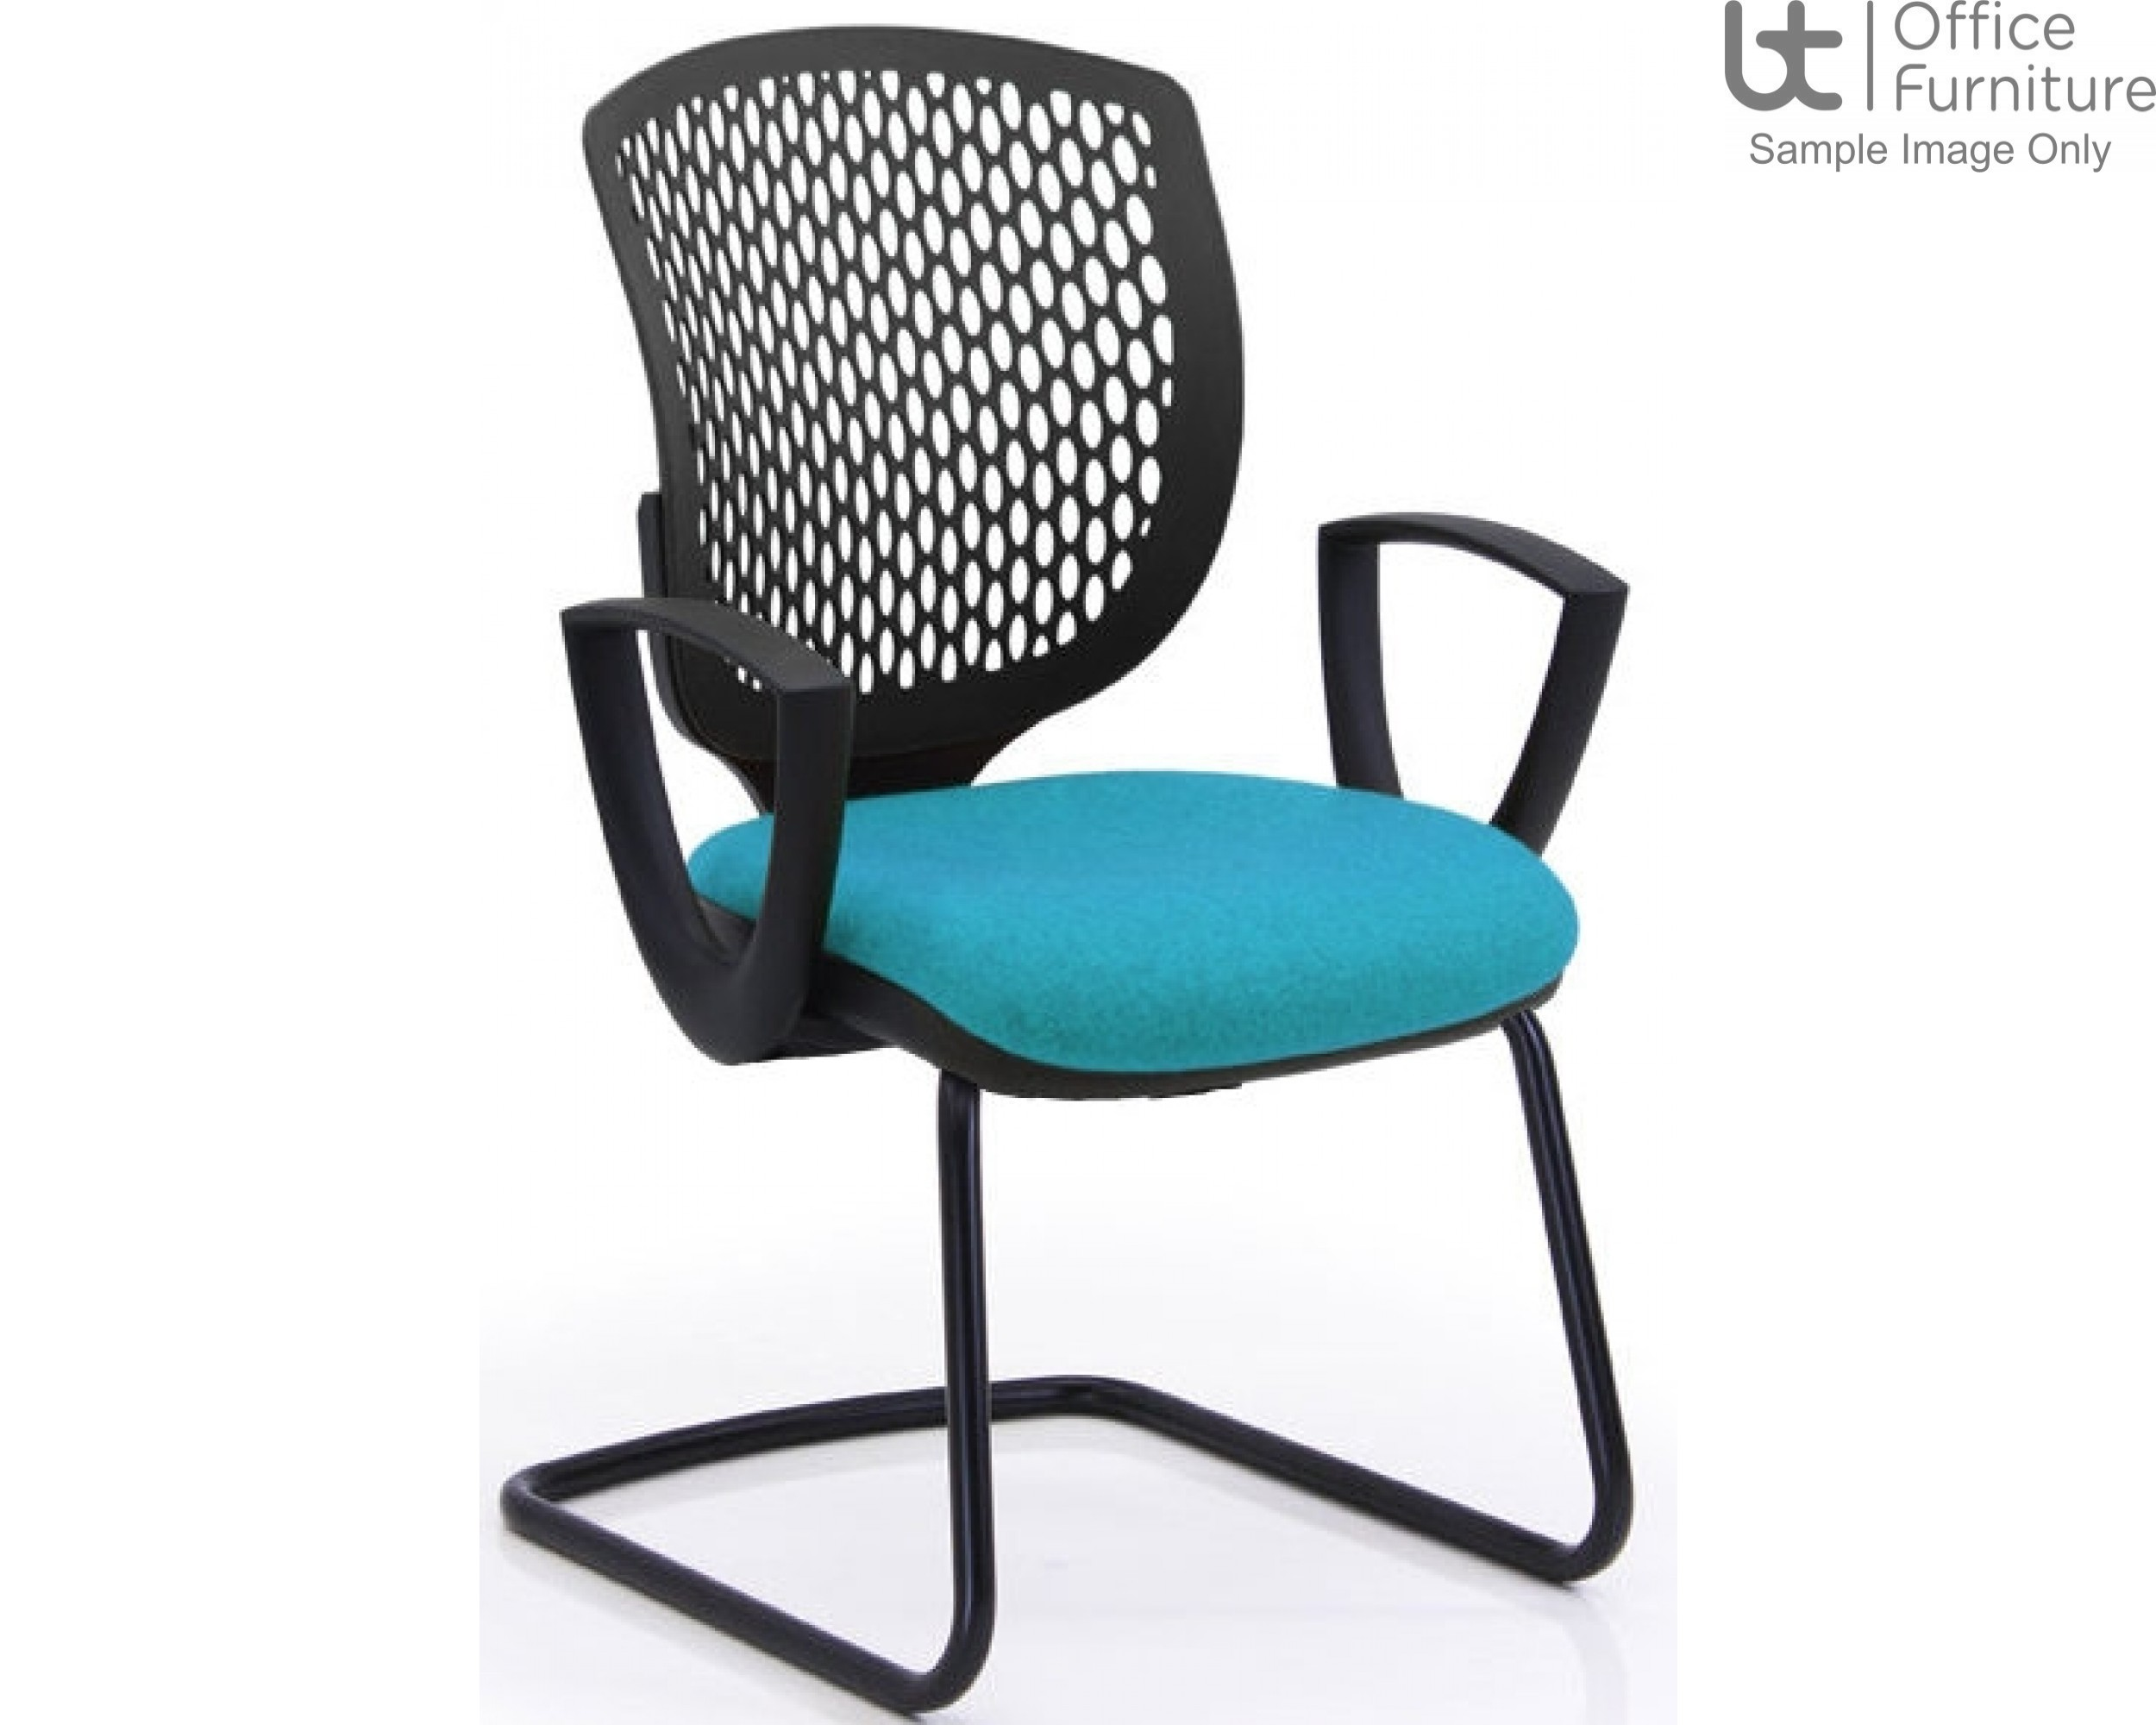 Verco Operator/Task Chair - Carlo Black Medium Back Visitor Chair with Arms